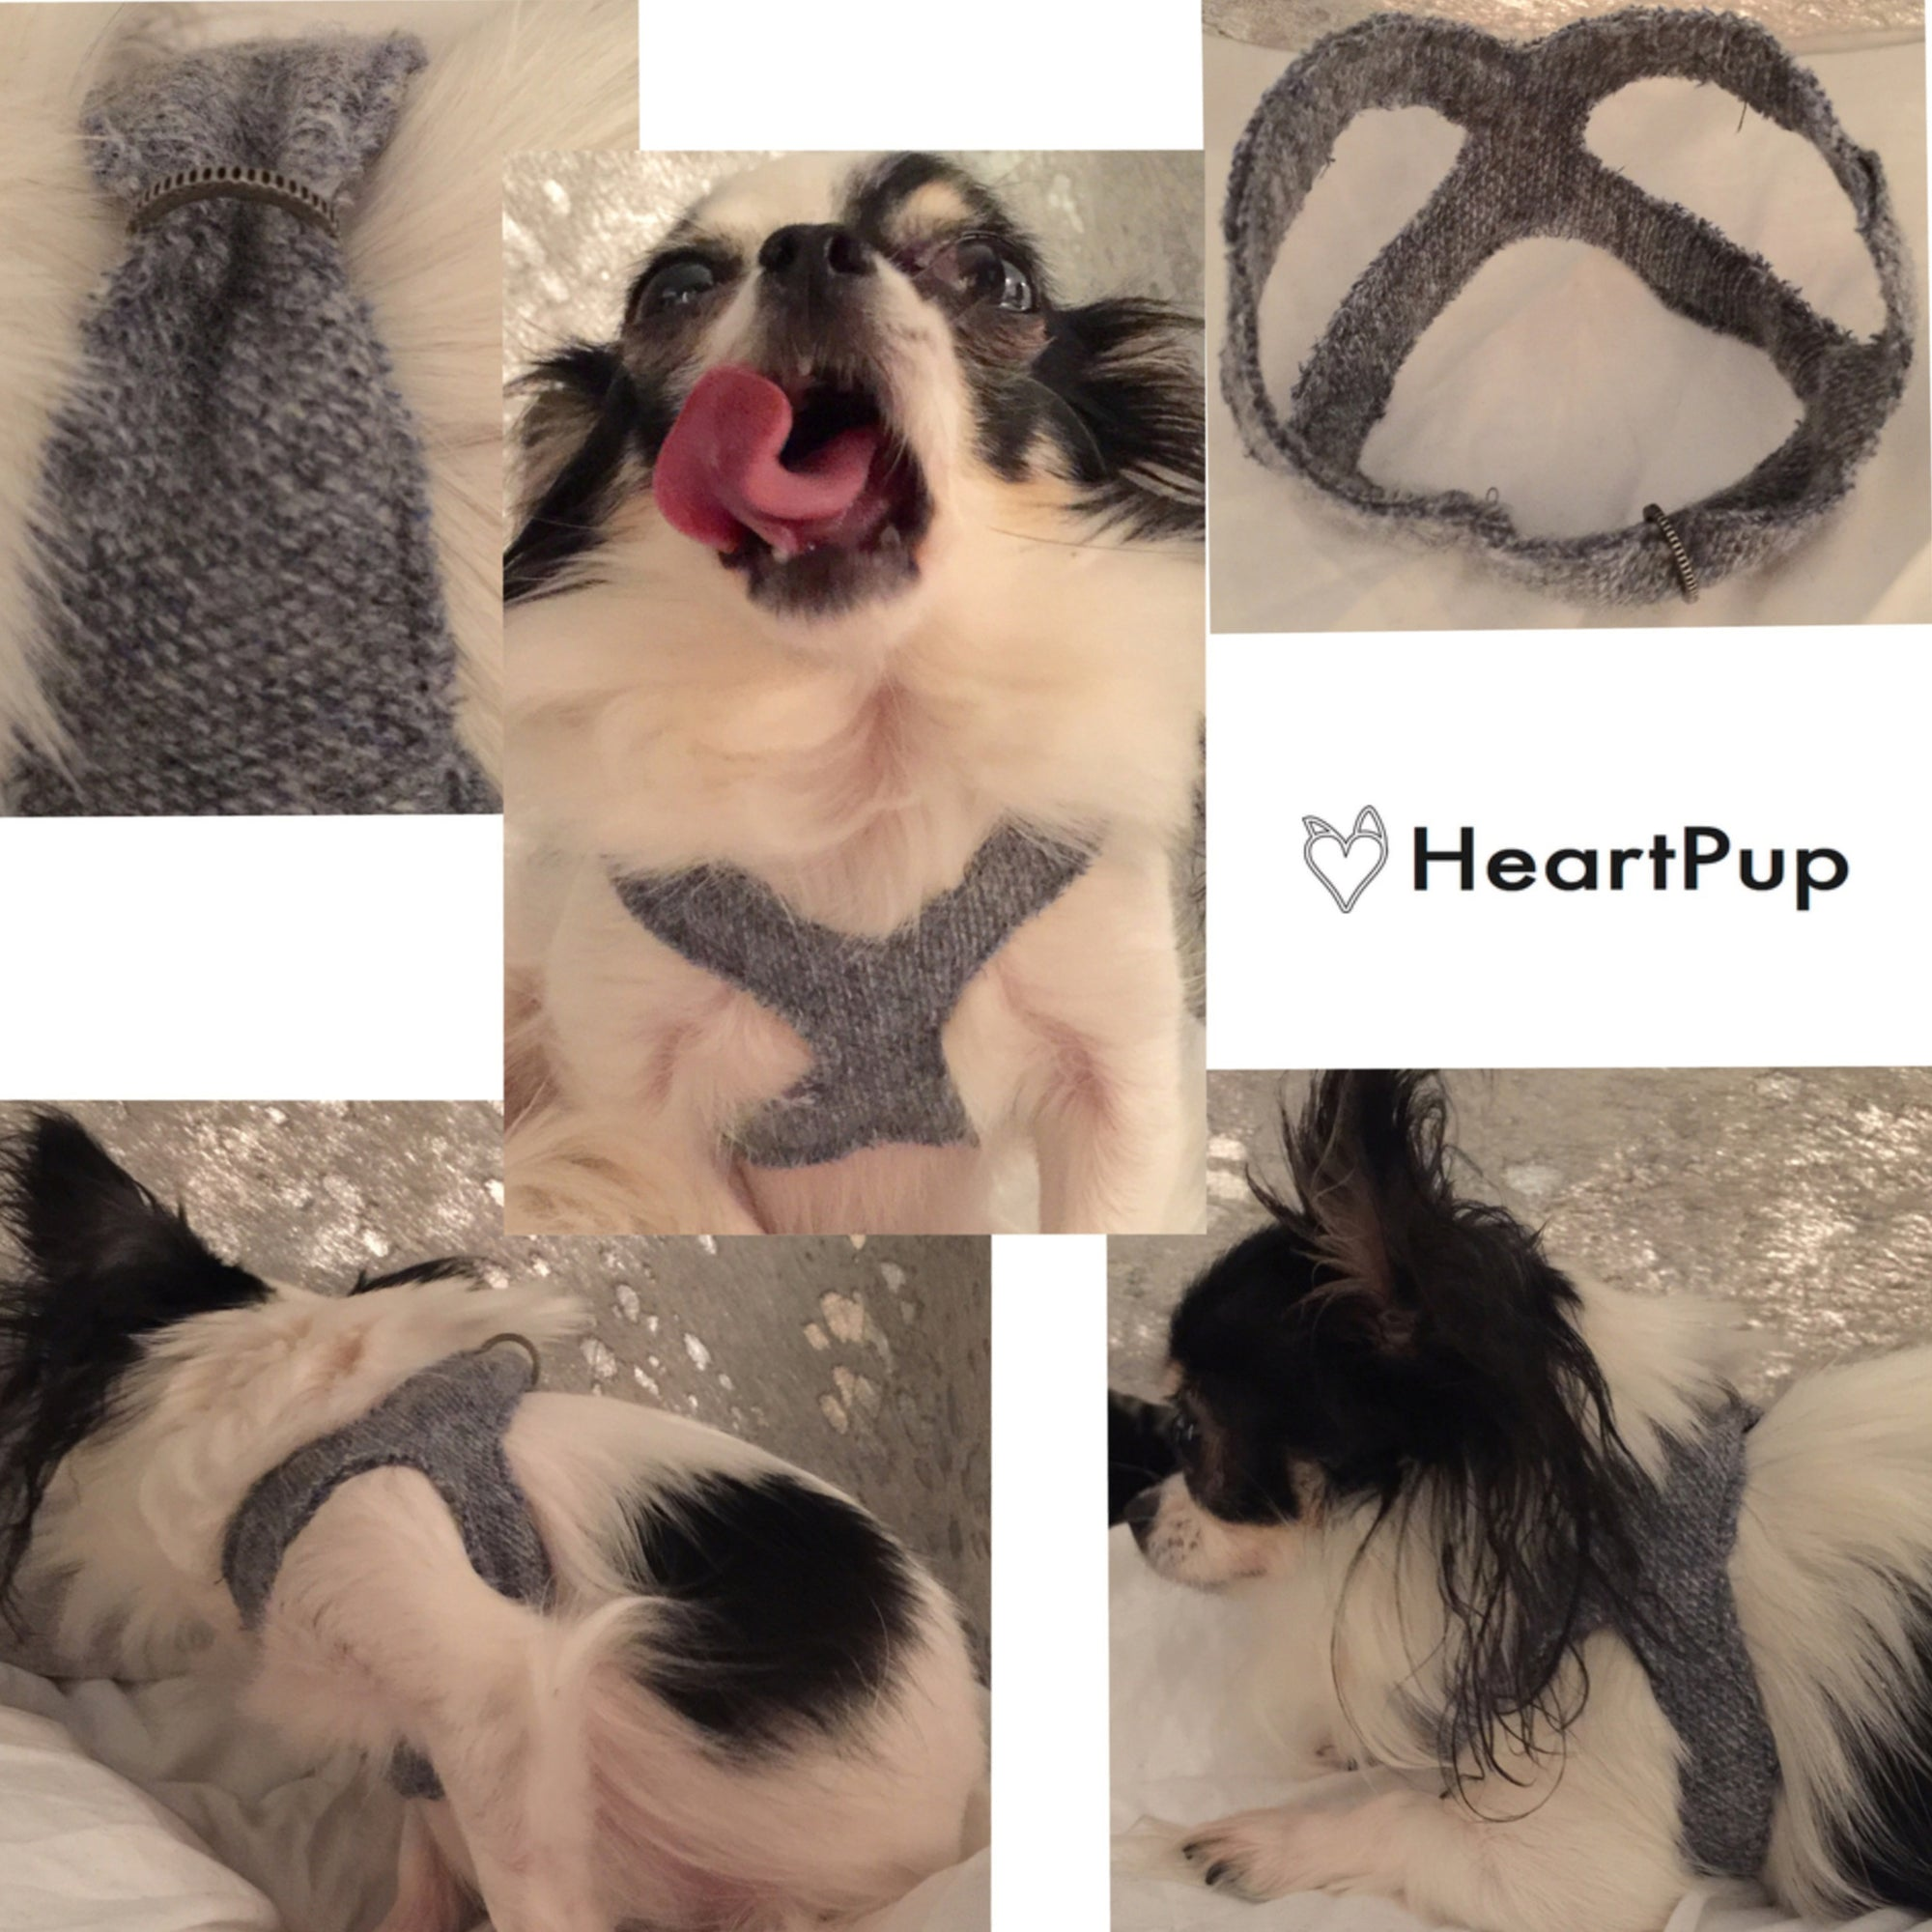 CASHMERE COTTON FABRIC STEP IN COMFIEST DOG HARNESS EVER